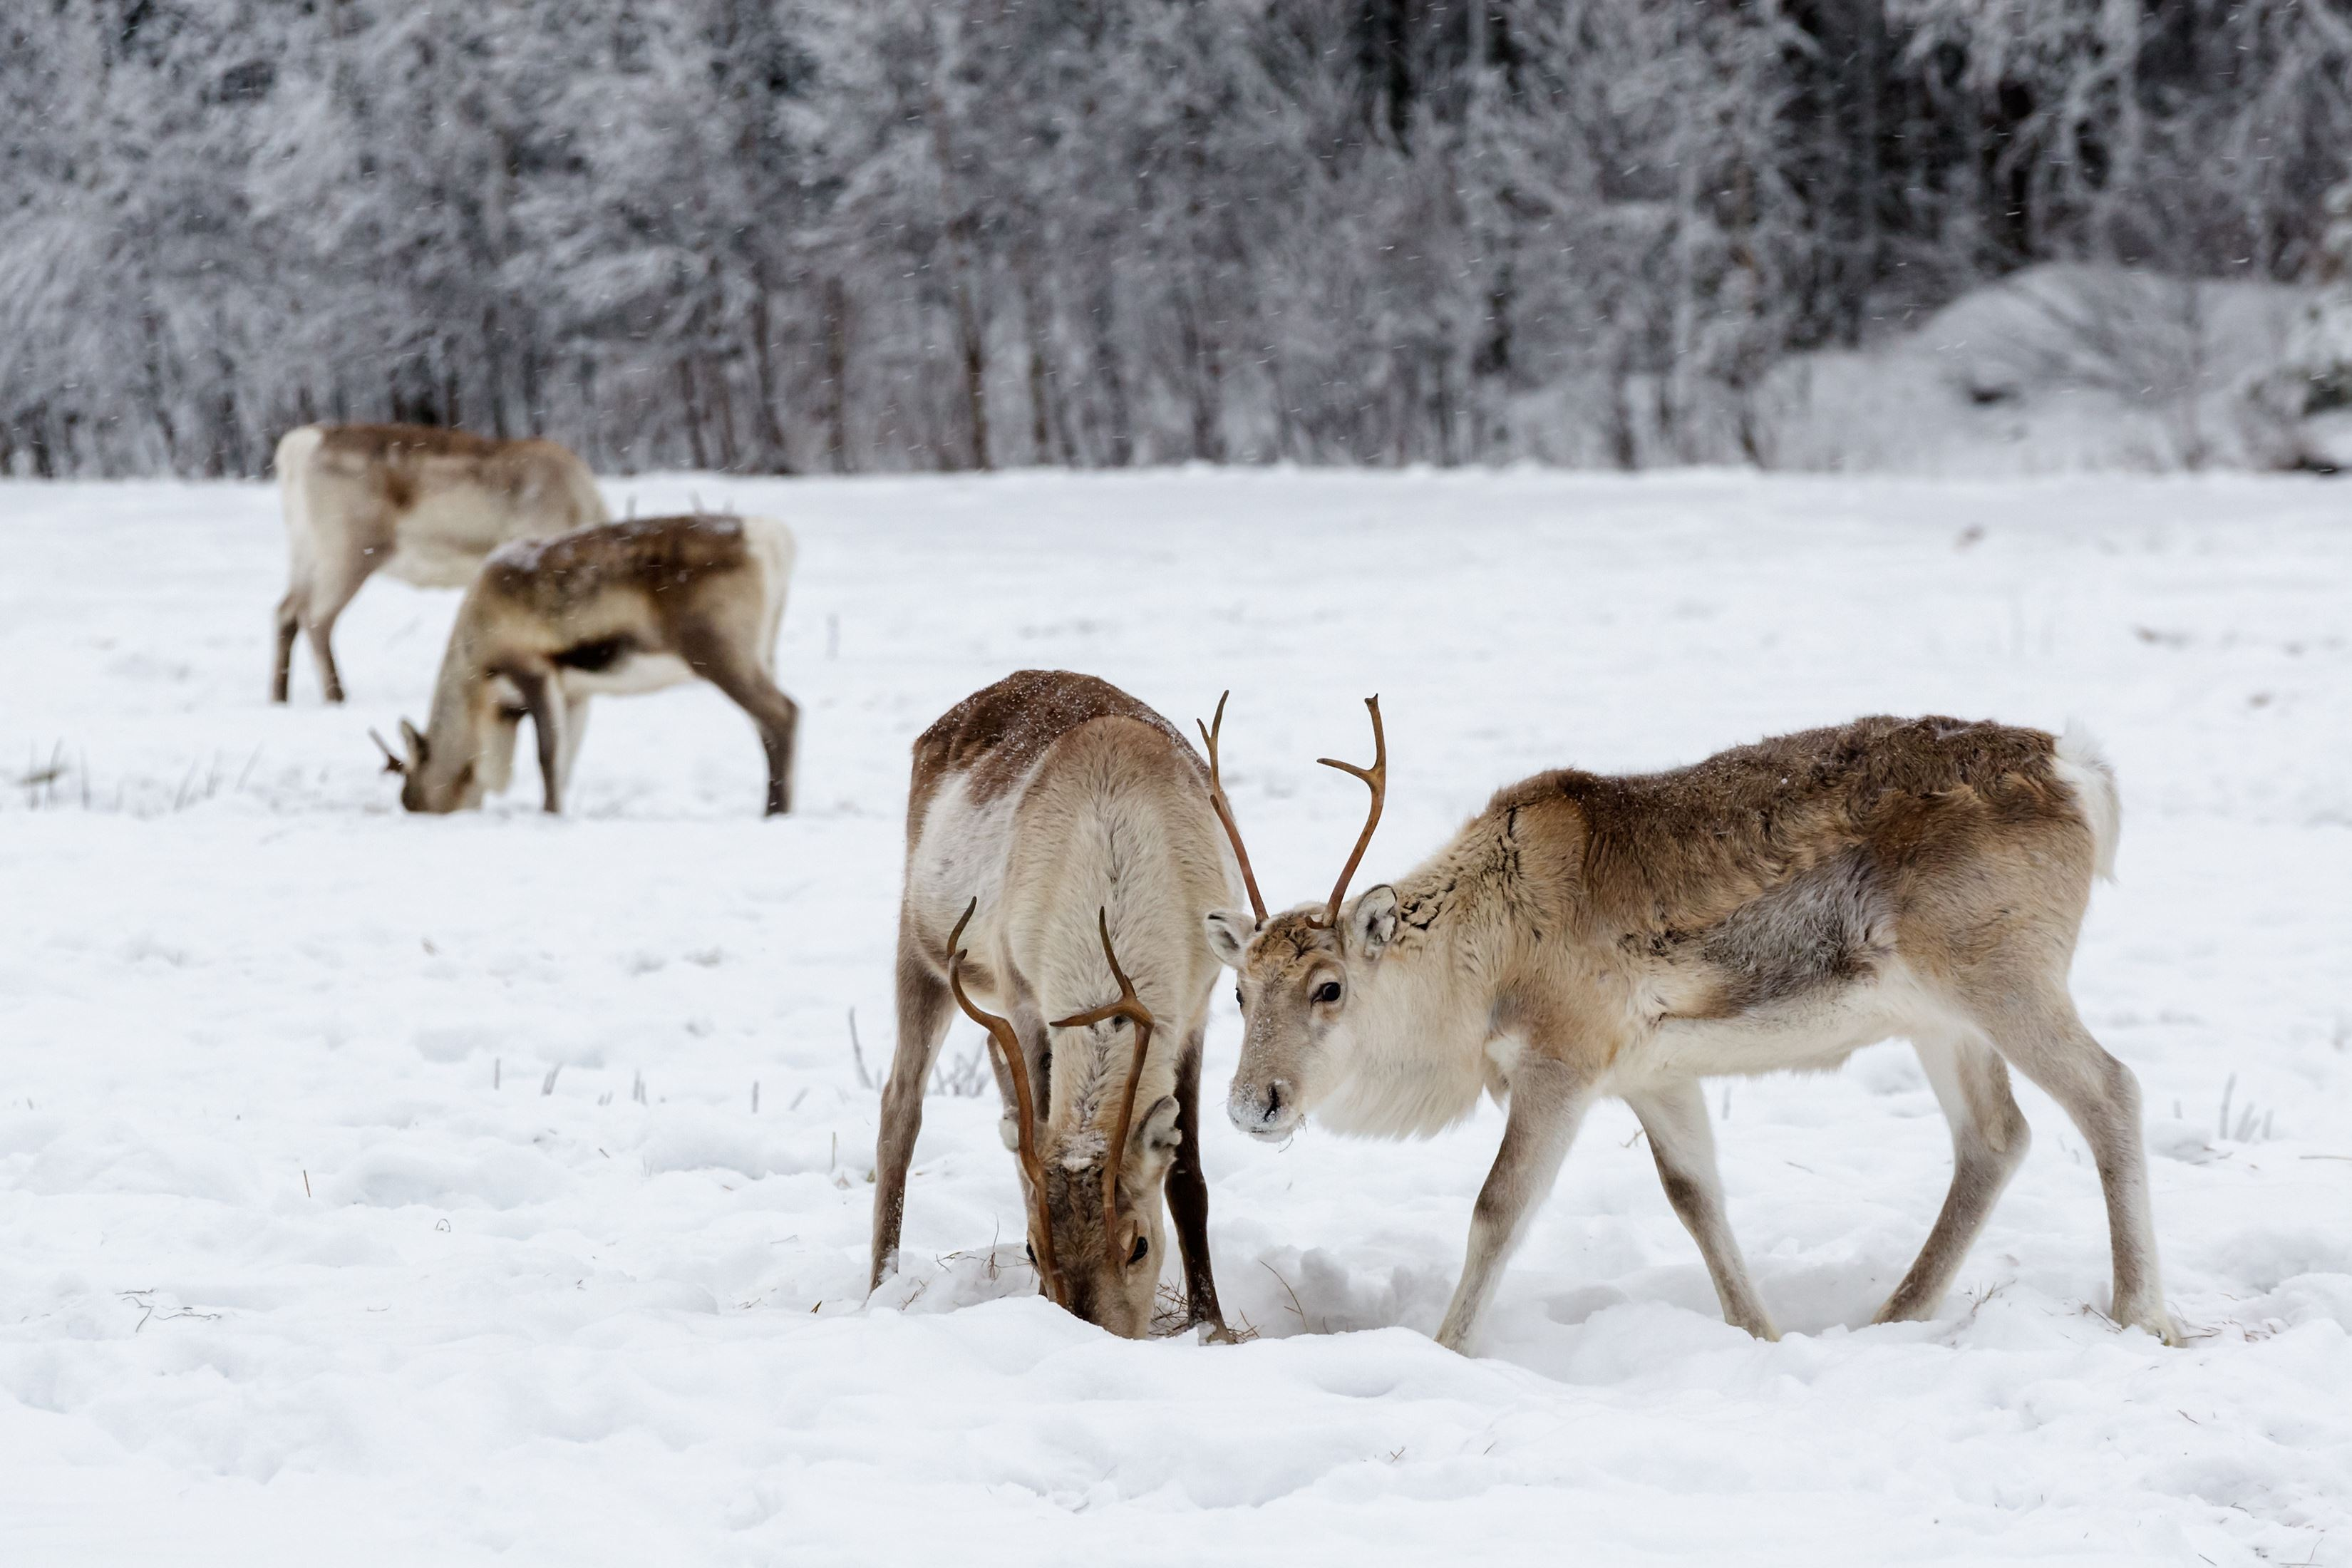 Reindeer feeding - Aurora Alps - Norway